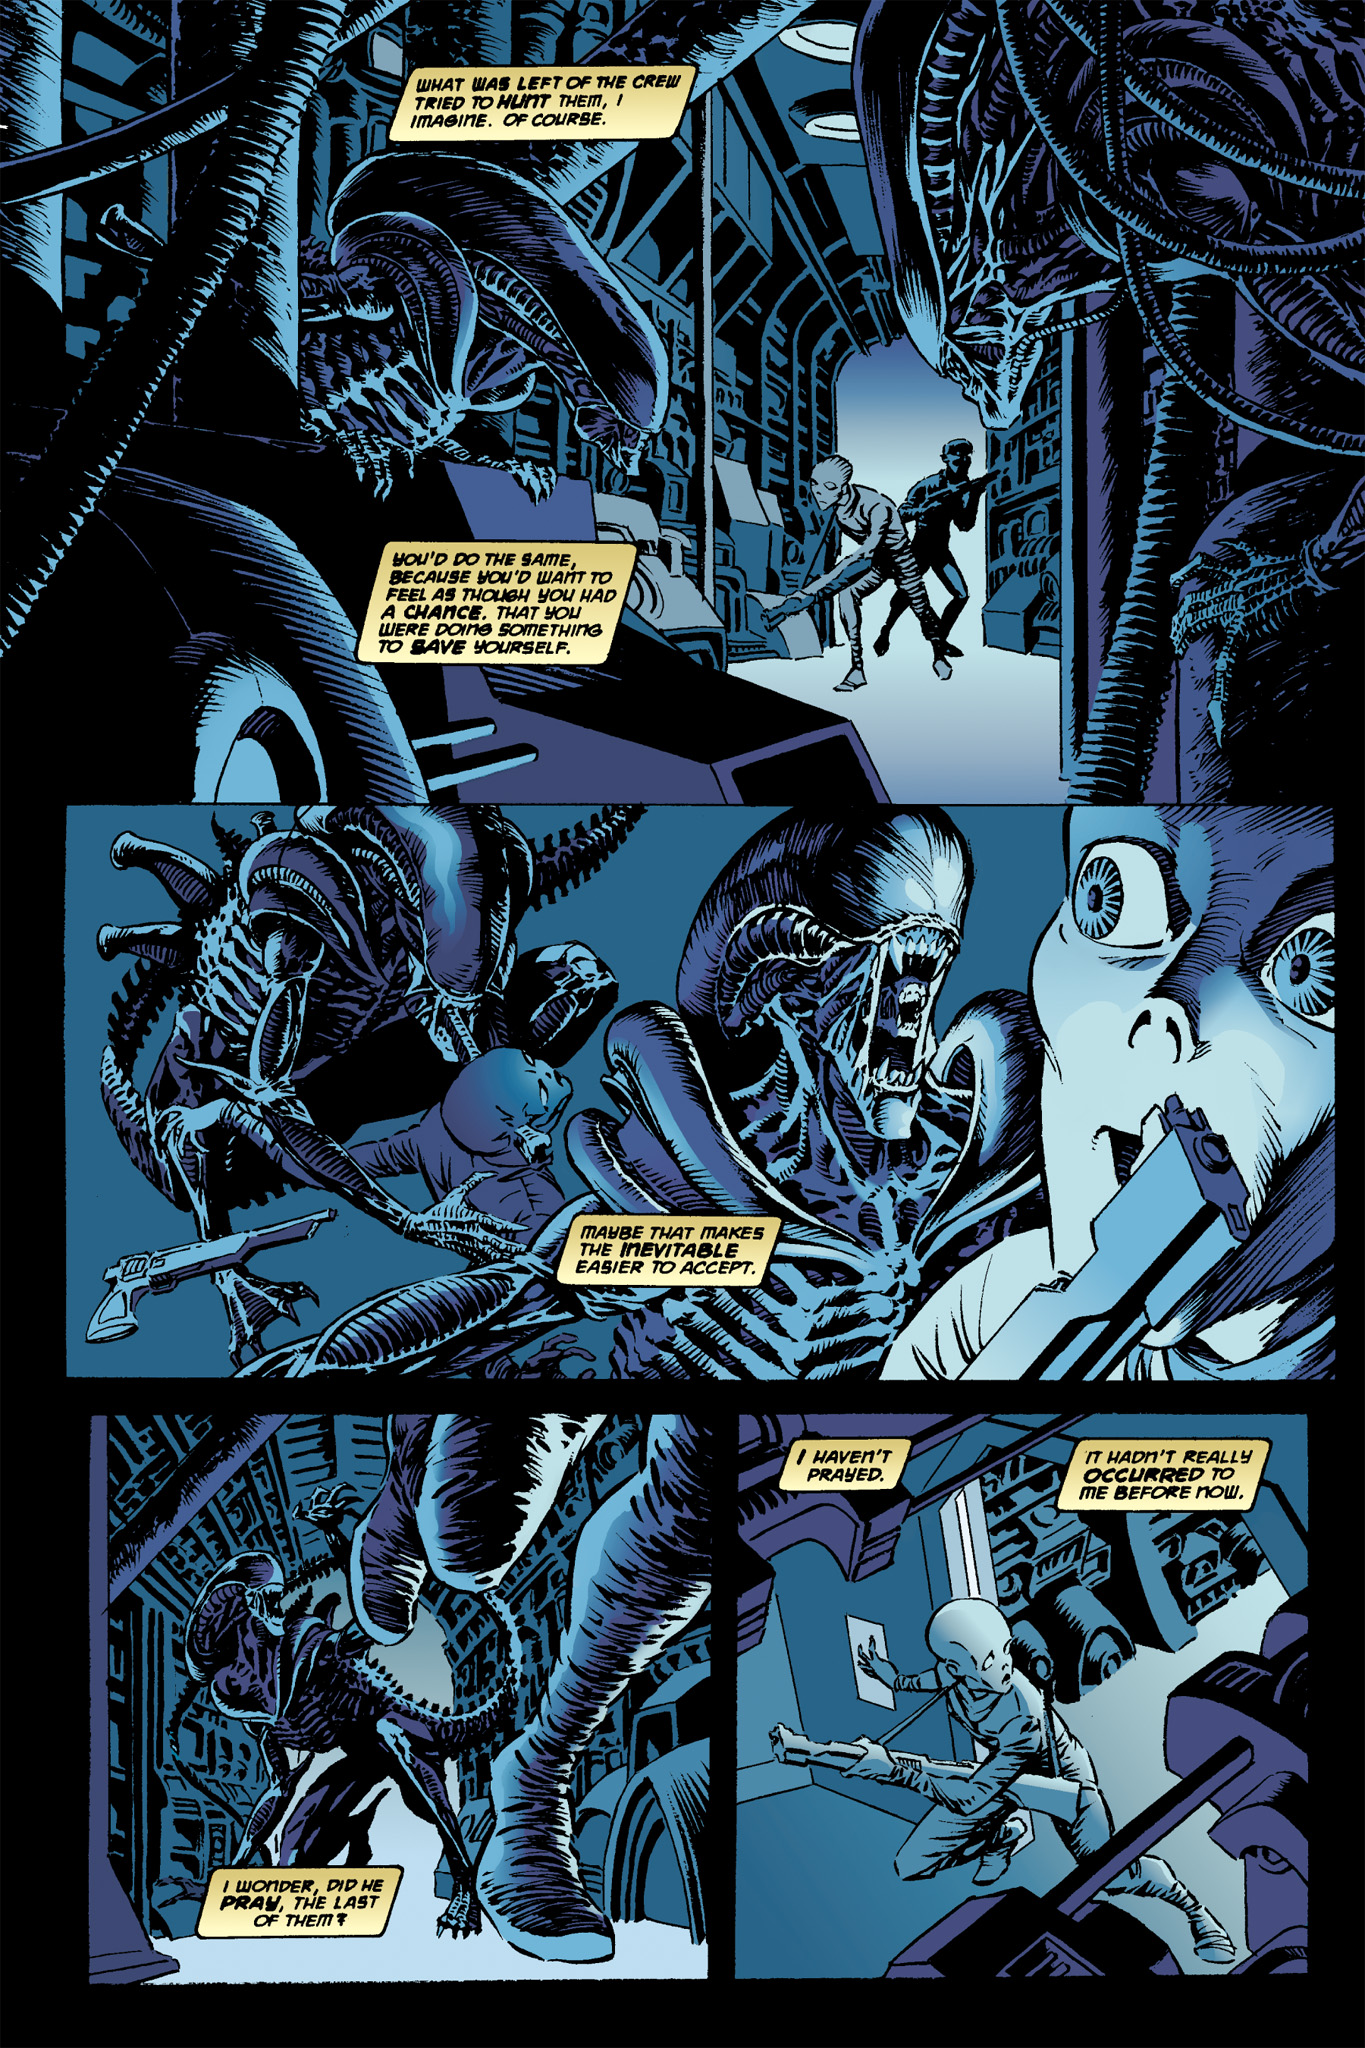 Read online Aliens: Incubation/Lucky/Taste comic -  Issue # Full - 12